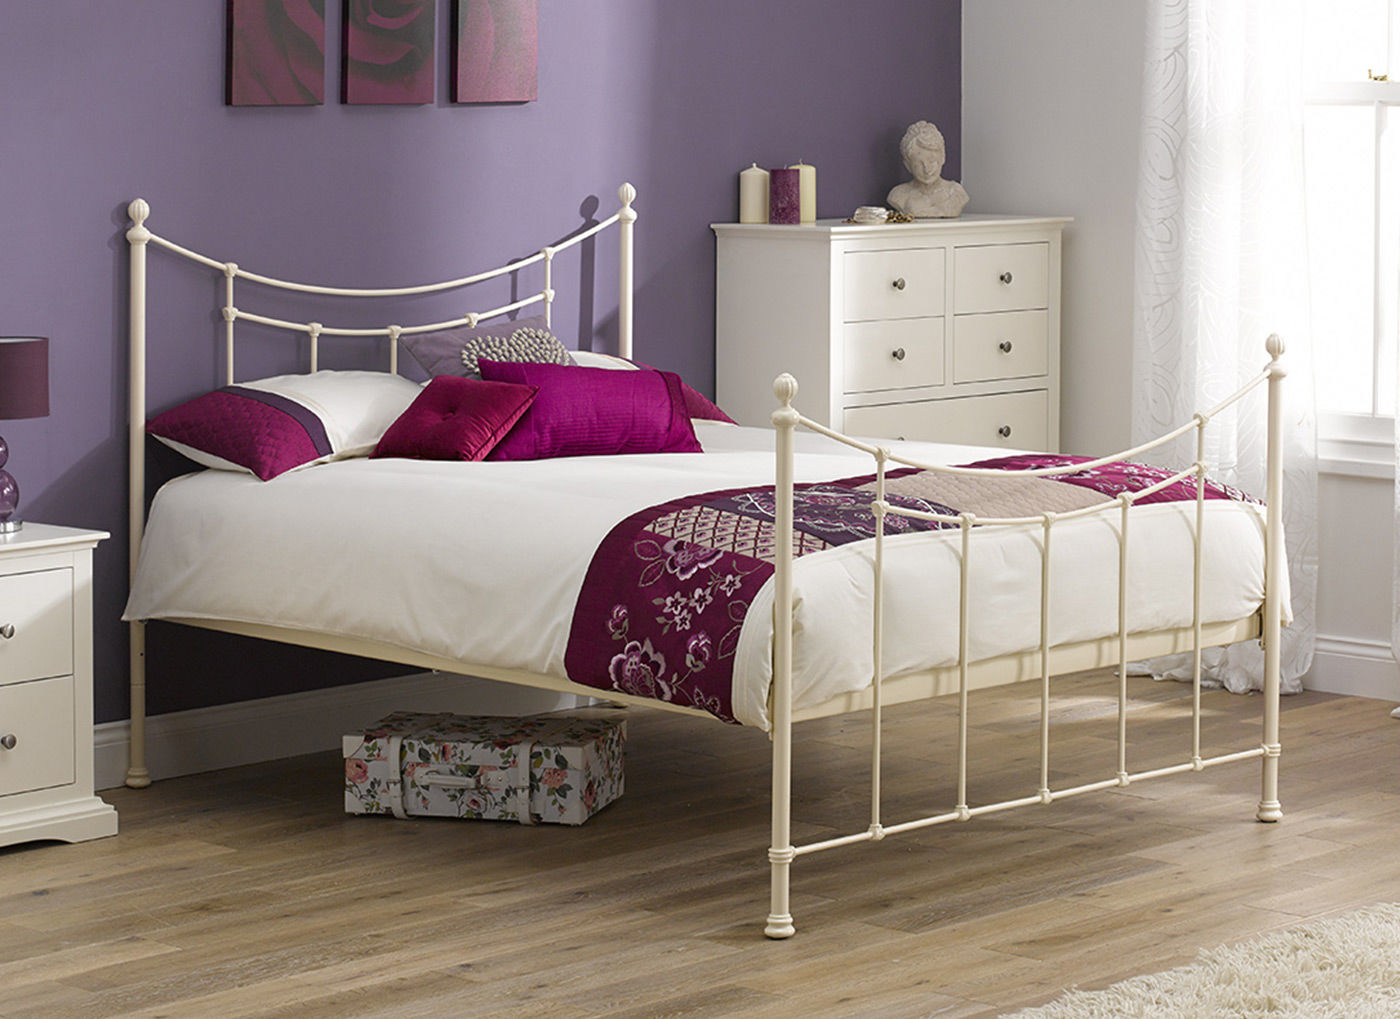 Winchester Ivory Metal Bed Frame 3 0 Single Off White Bed Sava